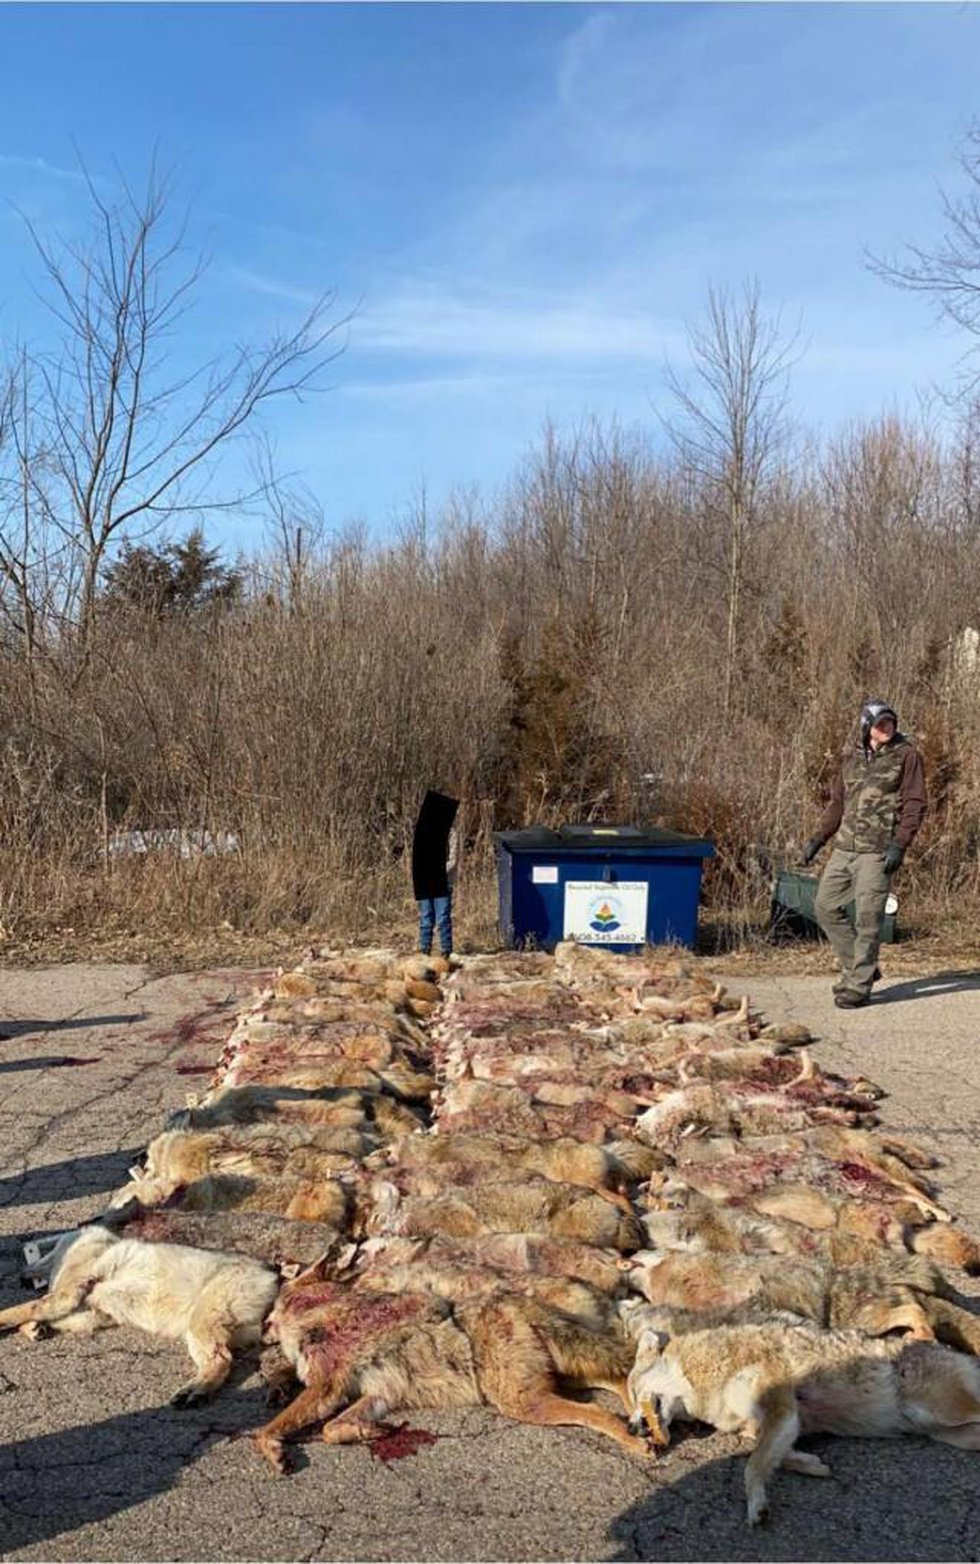 Piles of dead coyotes at a competition in Merrimac on March 5th, 6th, 7th